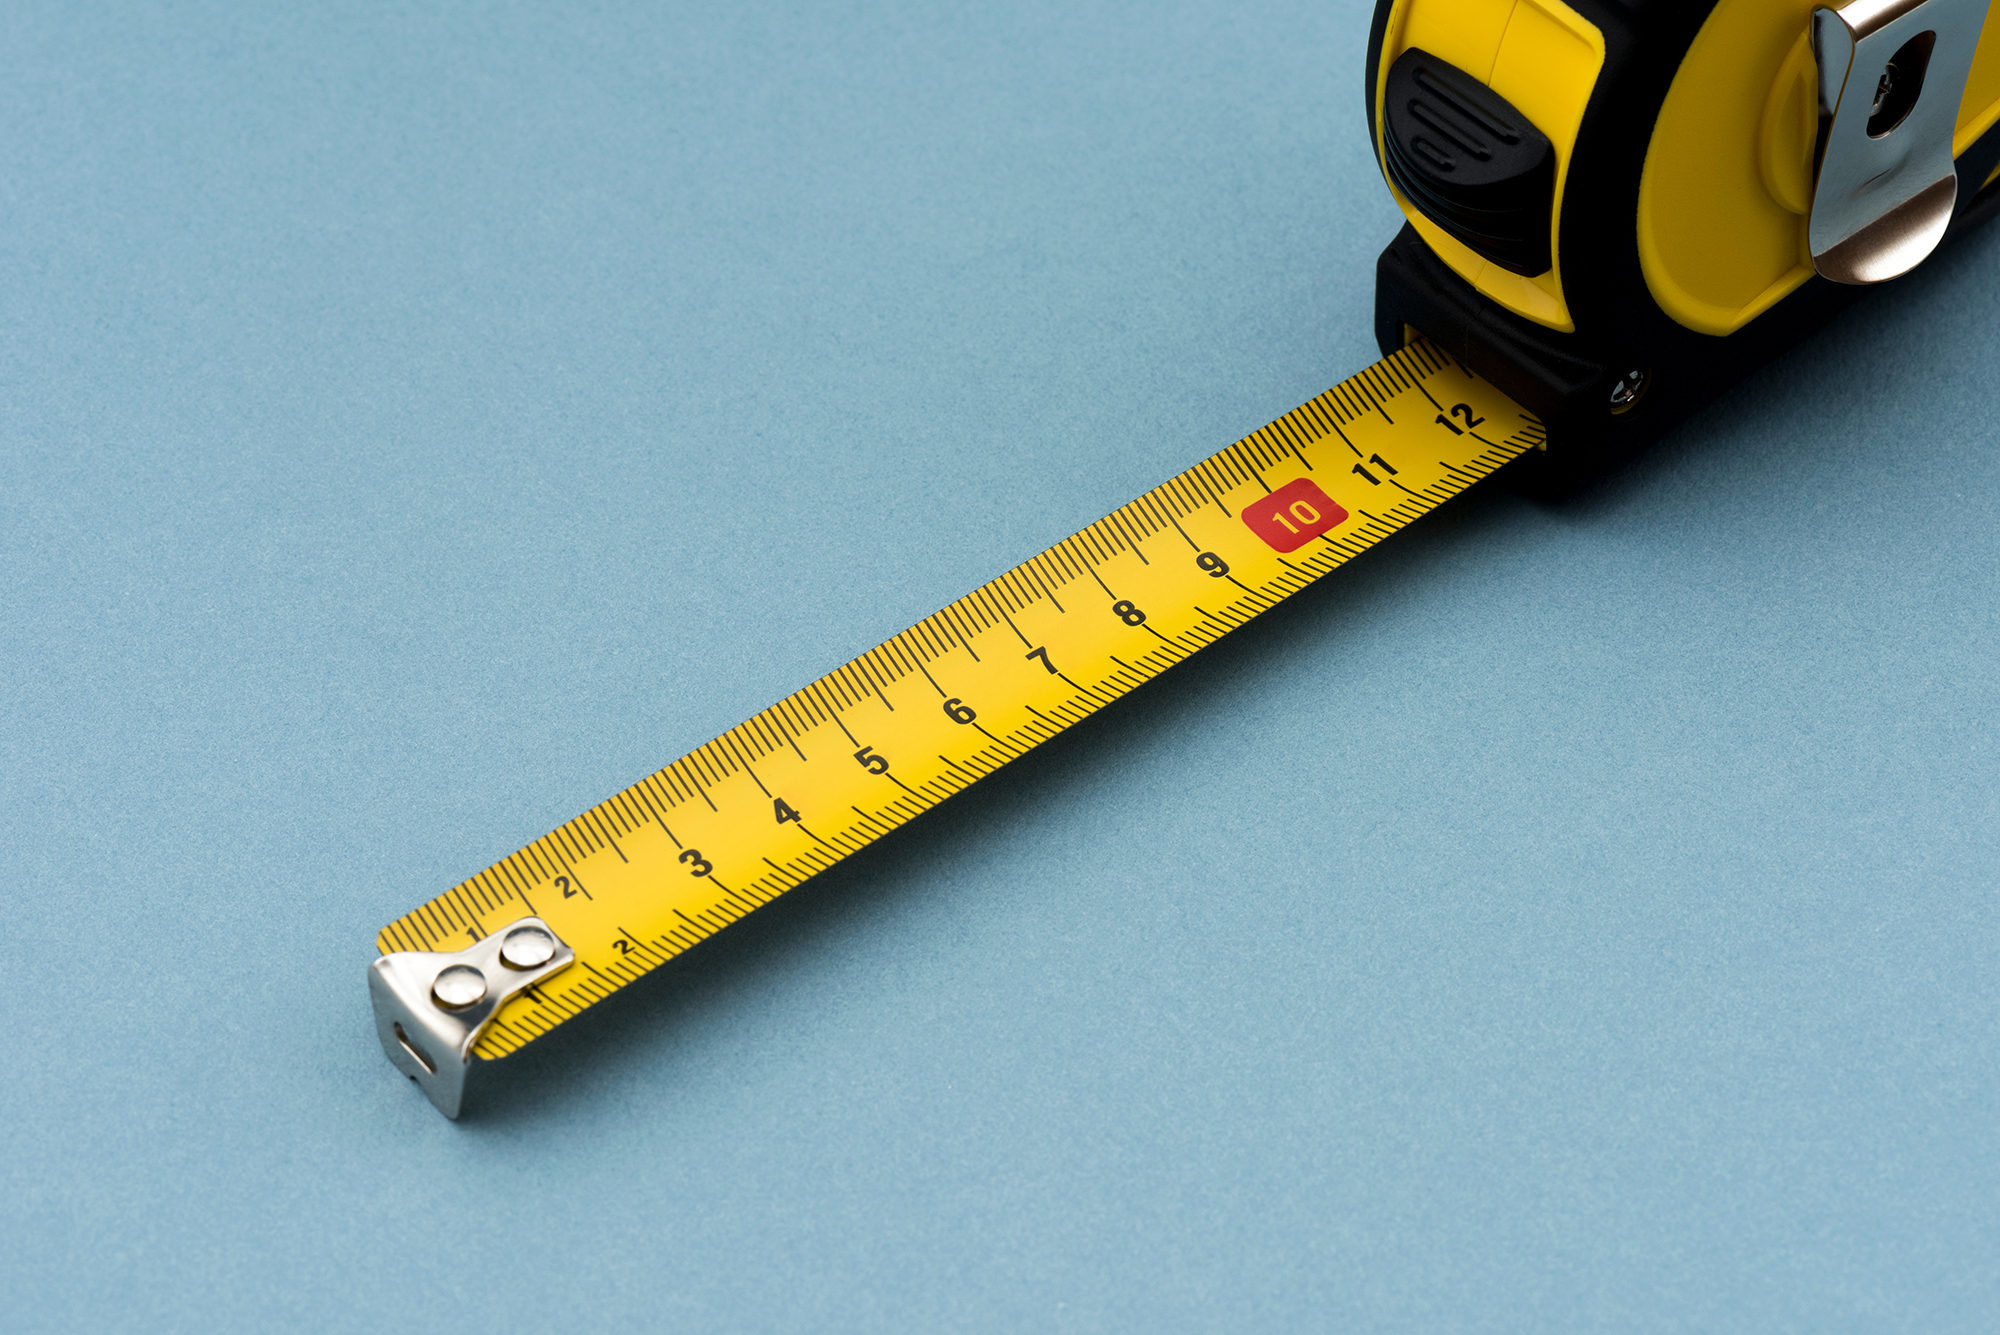 T-Shirt Rulerguide Tool,DIY Tailors Clothing Measuring Tape,Double Scale Measuring Tape for Body Measurements